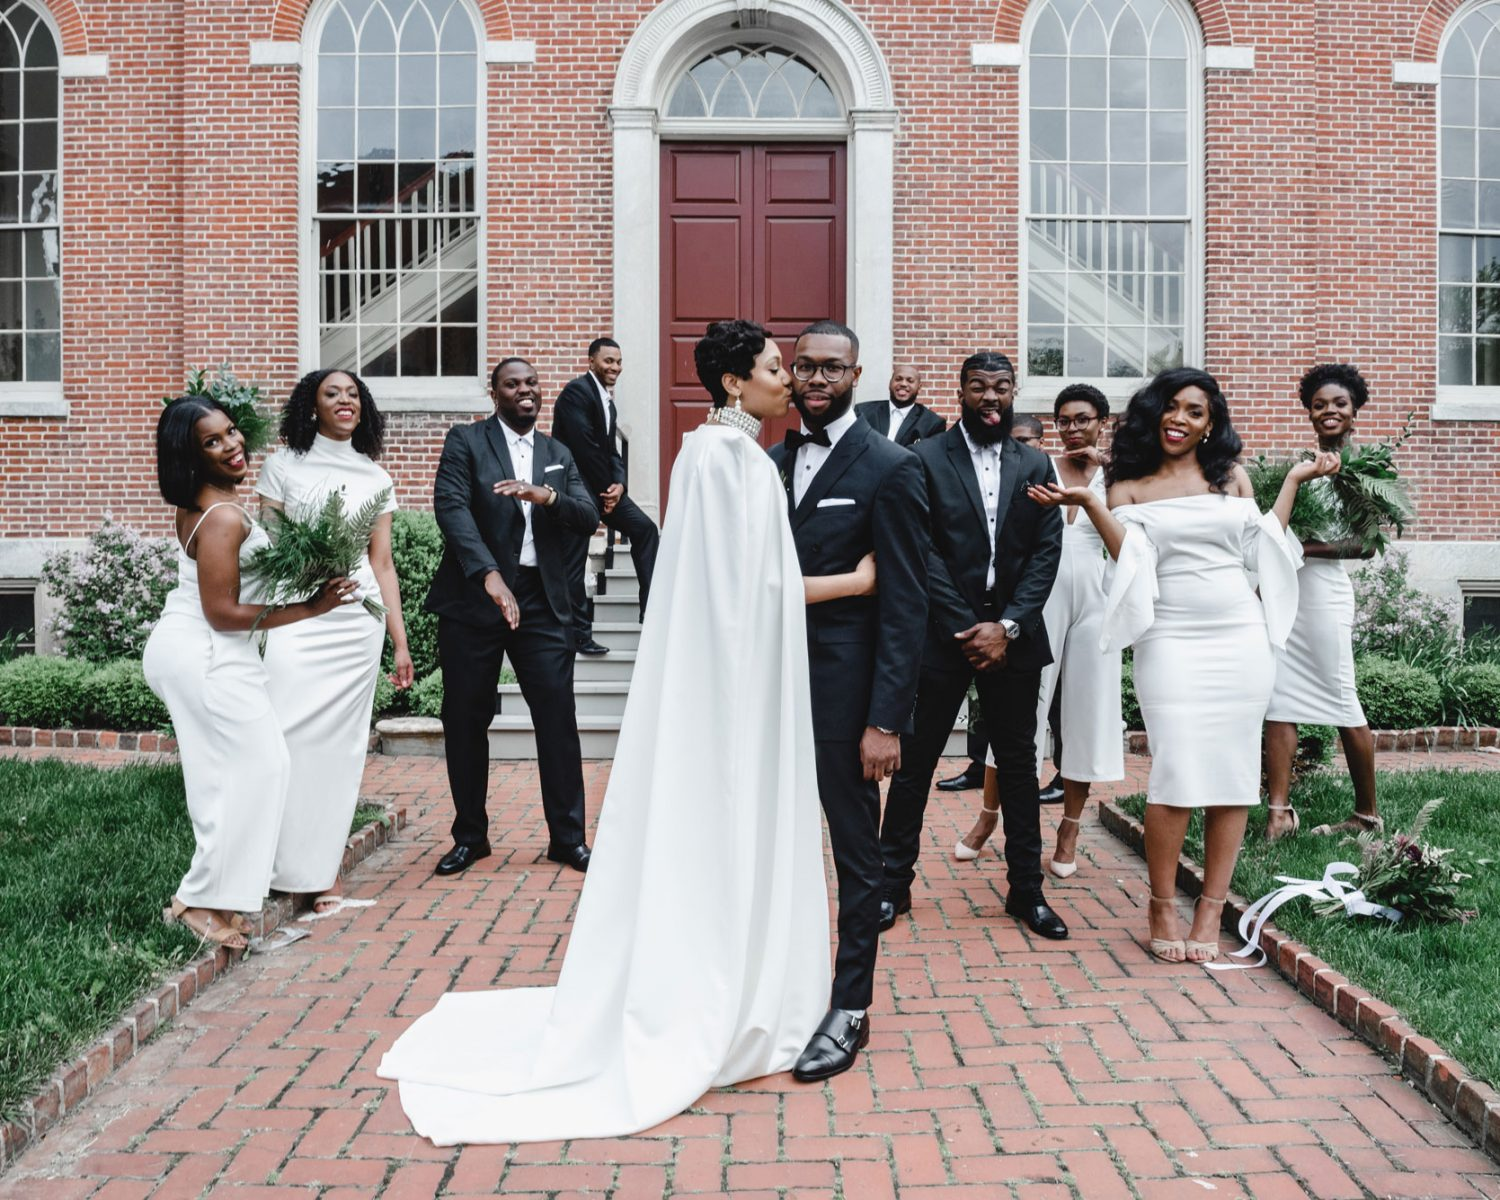 Bride Recreates Solange's Epic Wedding Party Photo, Nails It